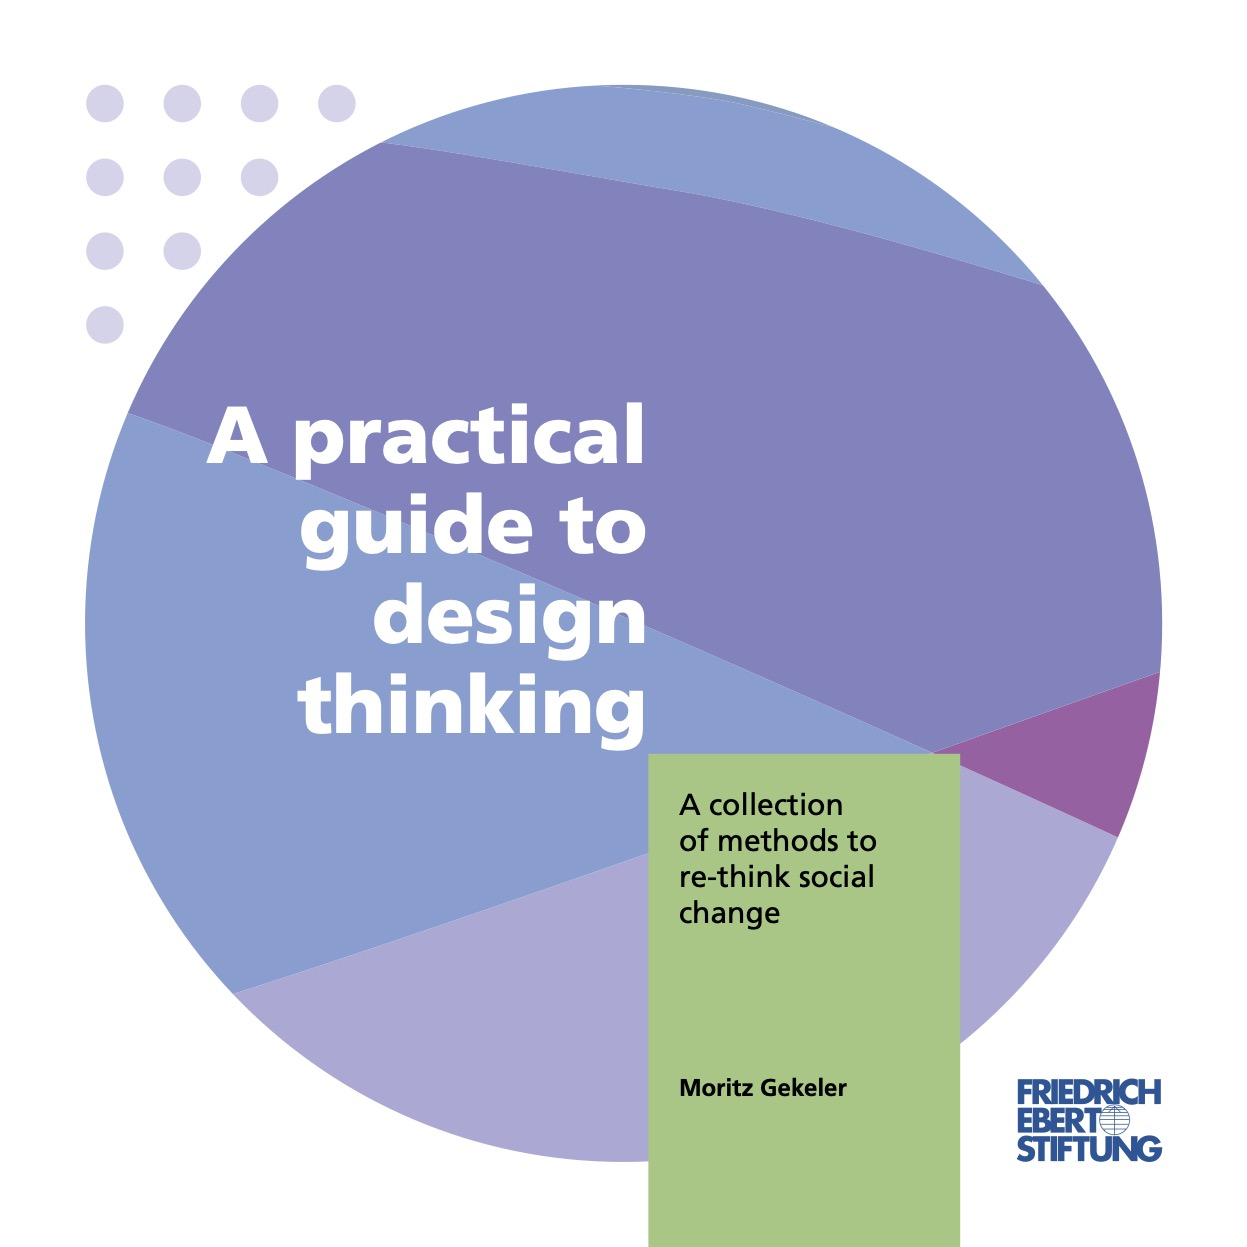 The cover of the Practical guide to design thinking